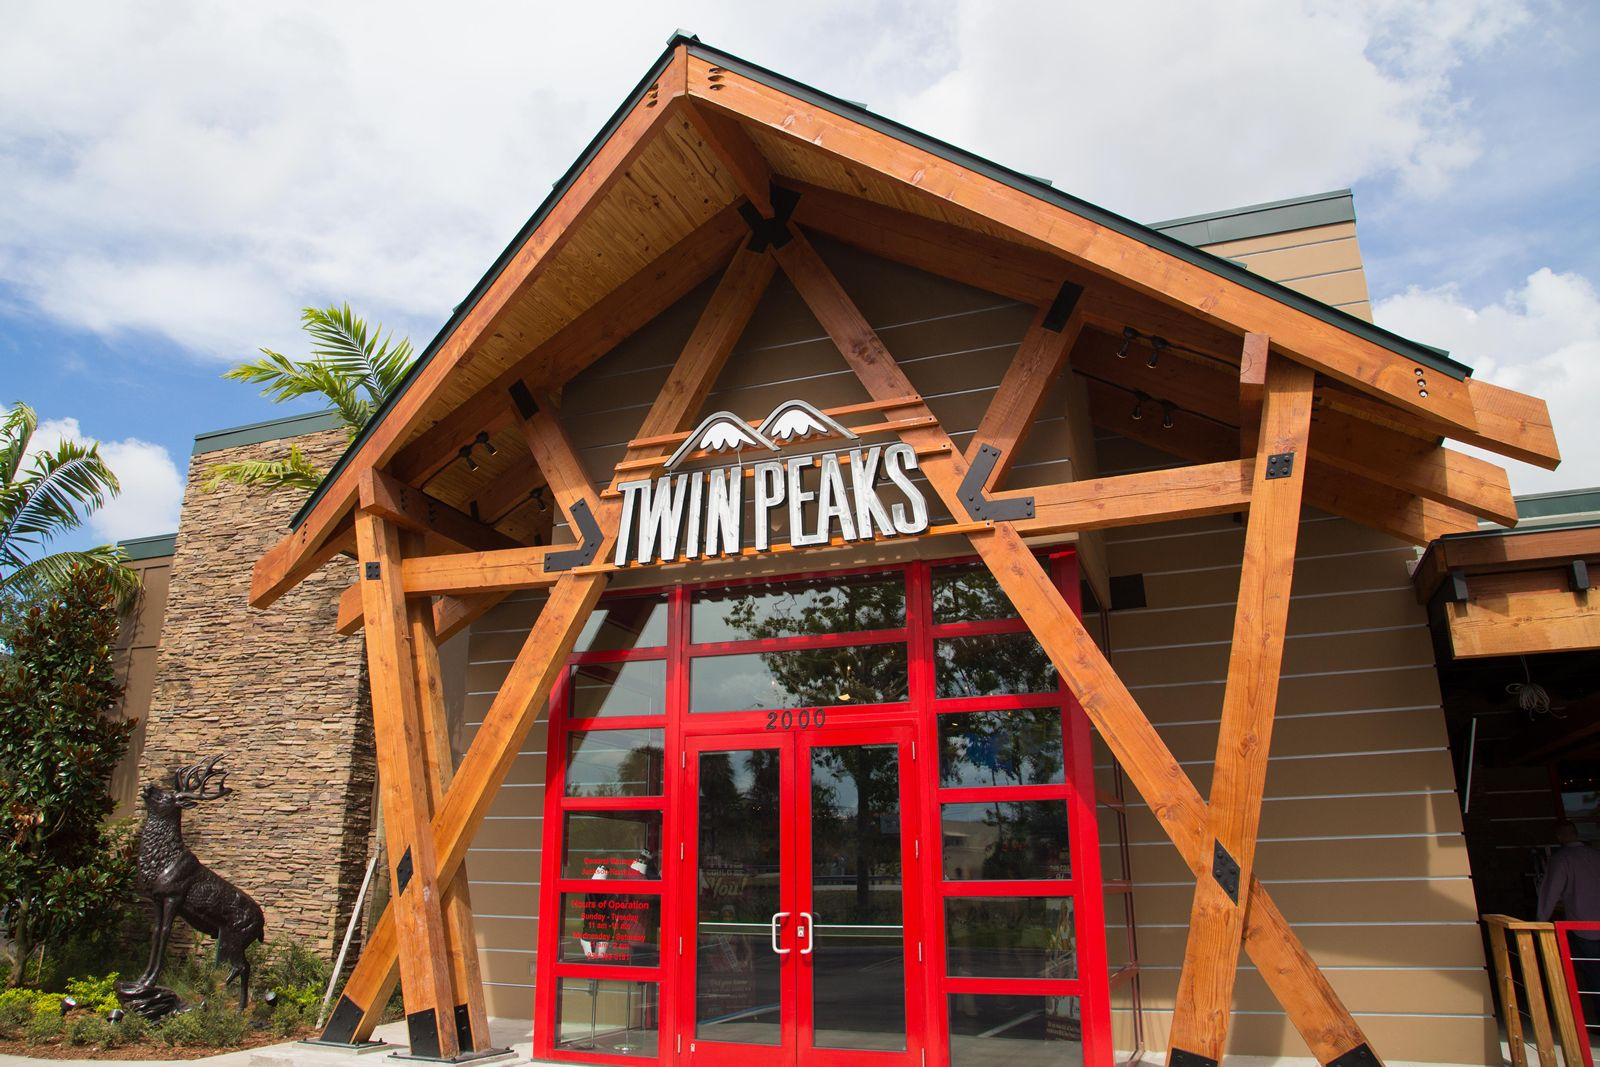 Twin Peaks' Traffic and Sales Consistently Climb in Q3